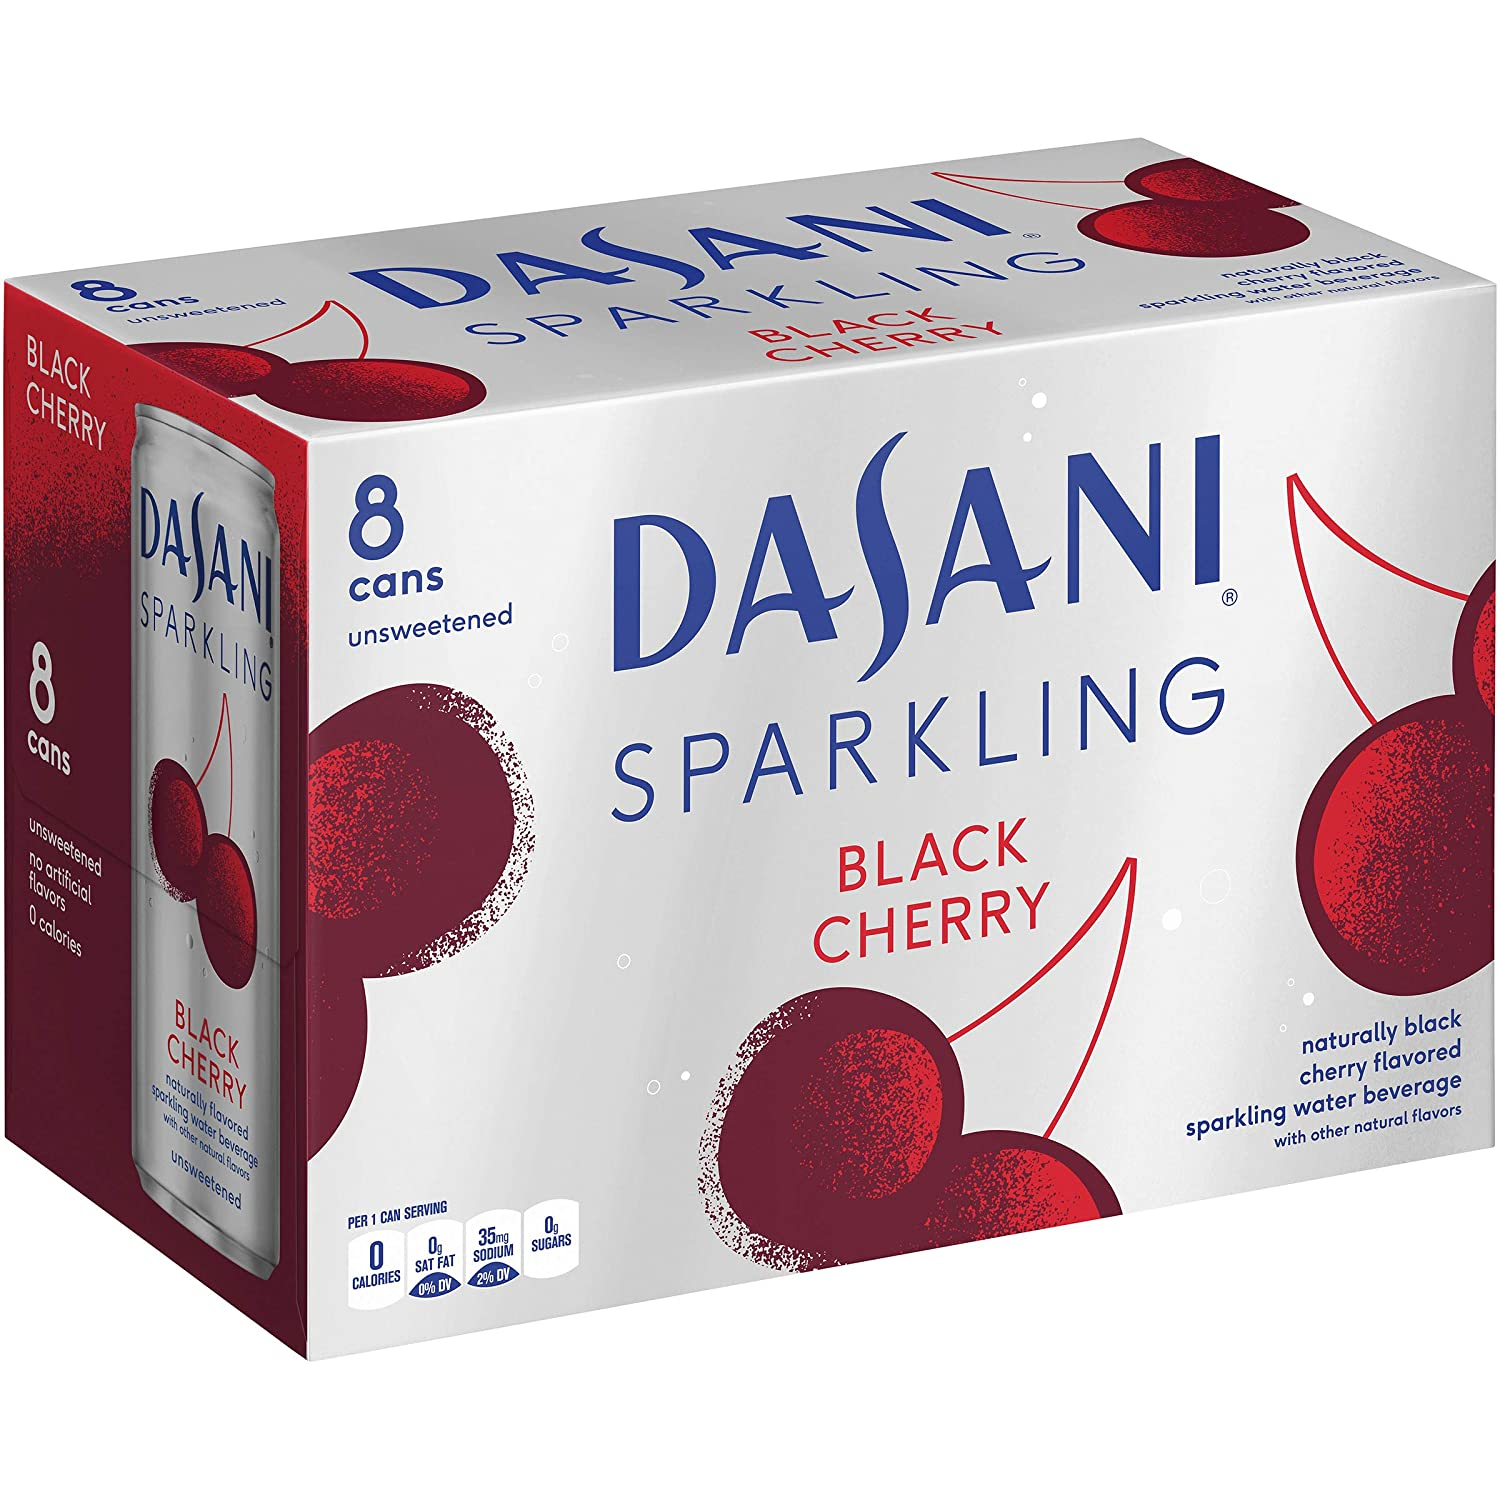 Dasani Black Cherry Sparkling Water